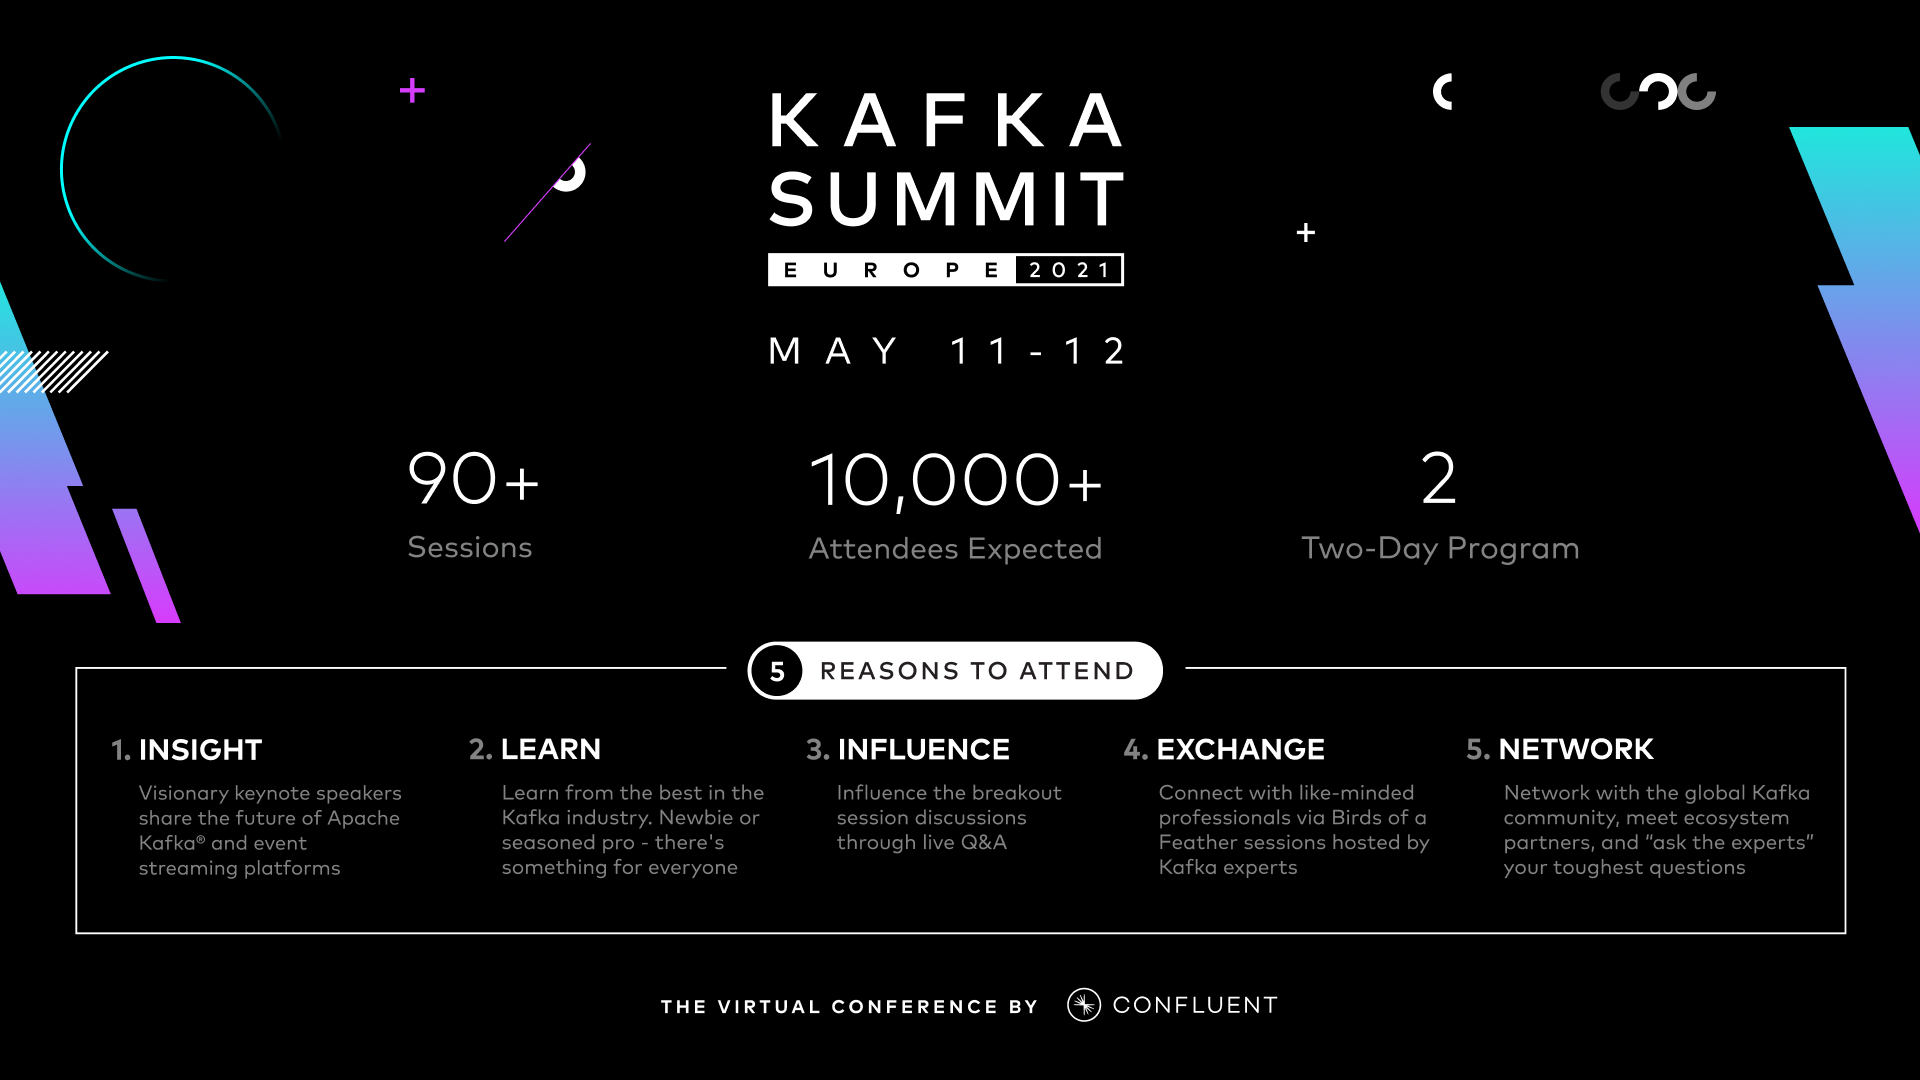 Kafka Summit Europe 2021